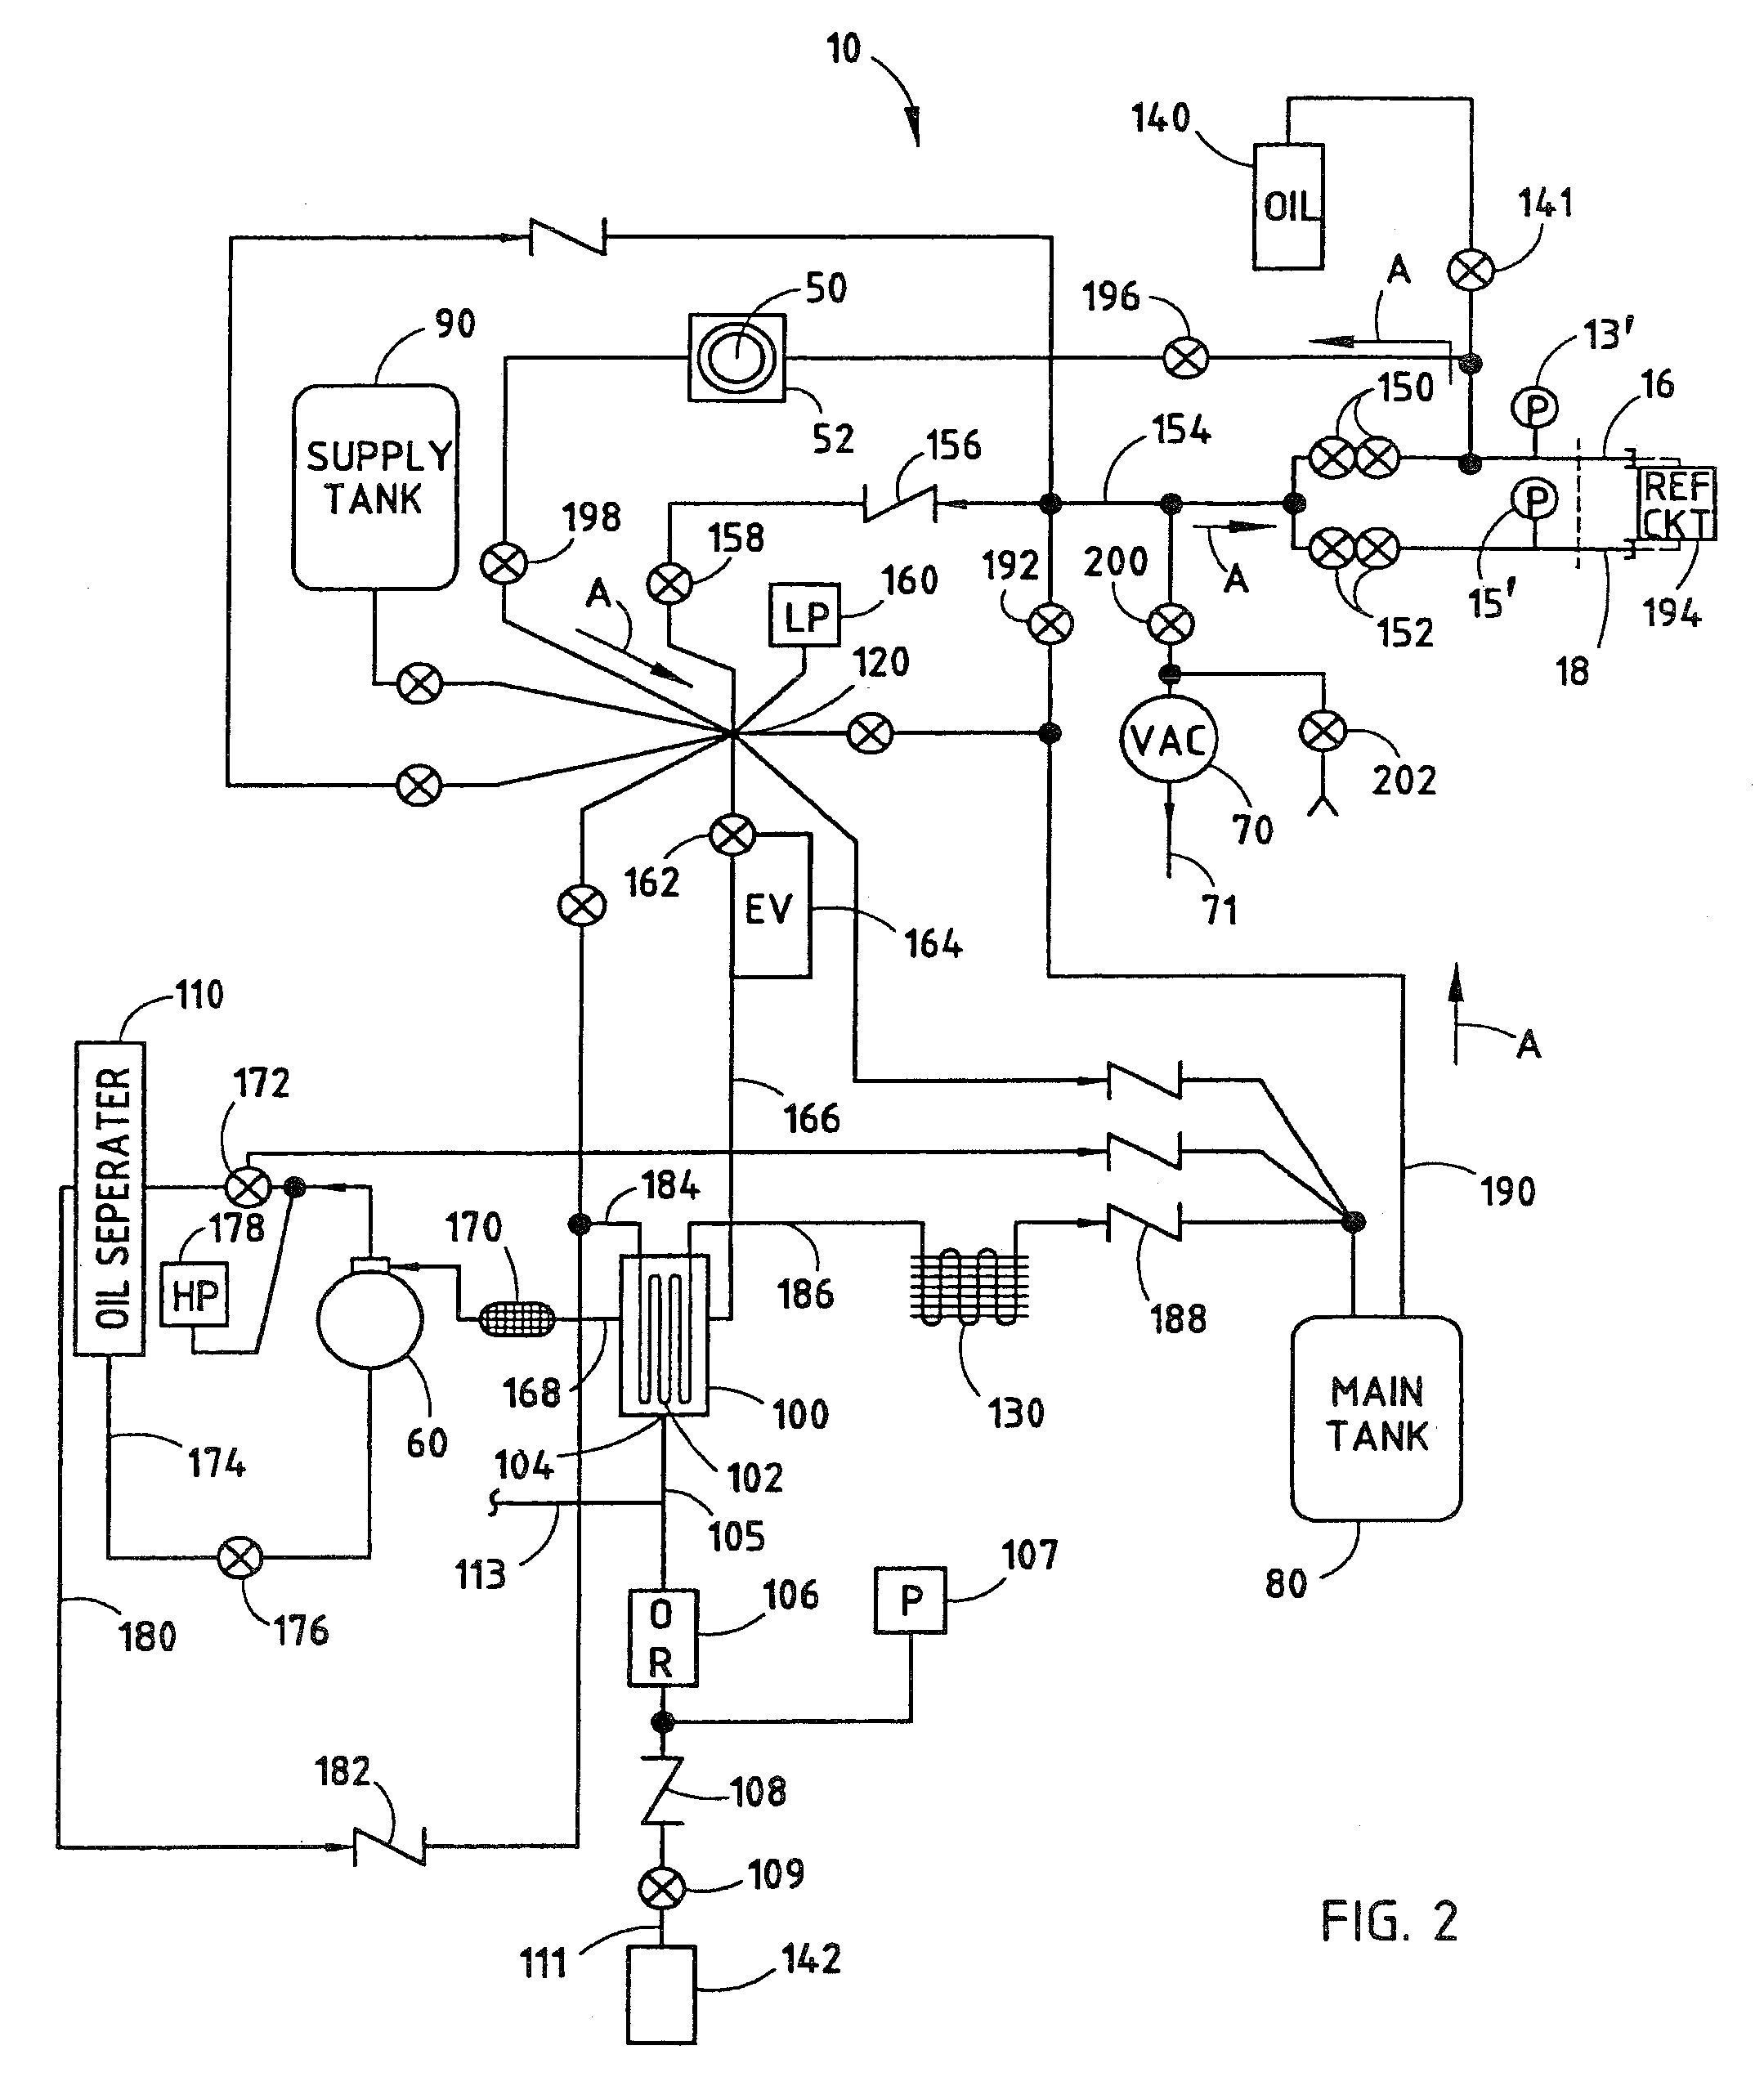 Patent Us8616011 Internal Clearing Function For A Refrigerant Accumulator Tank Schematic Drawing